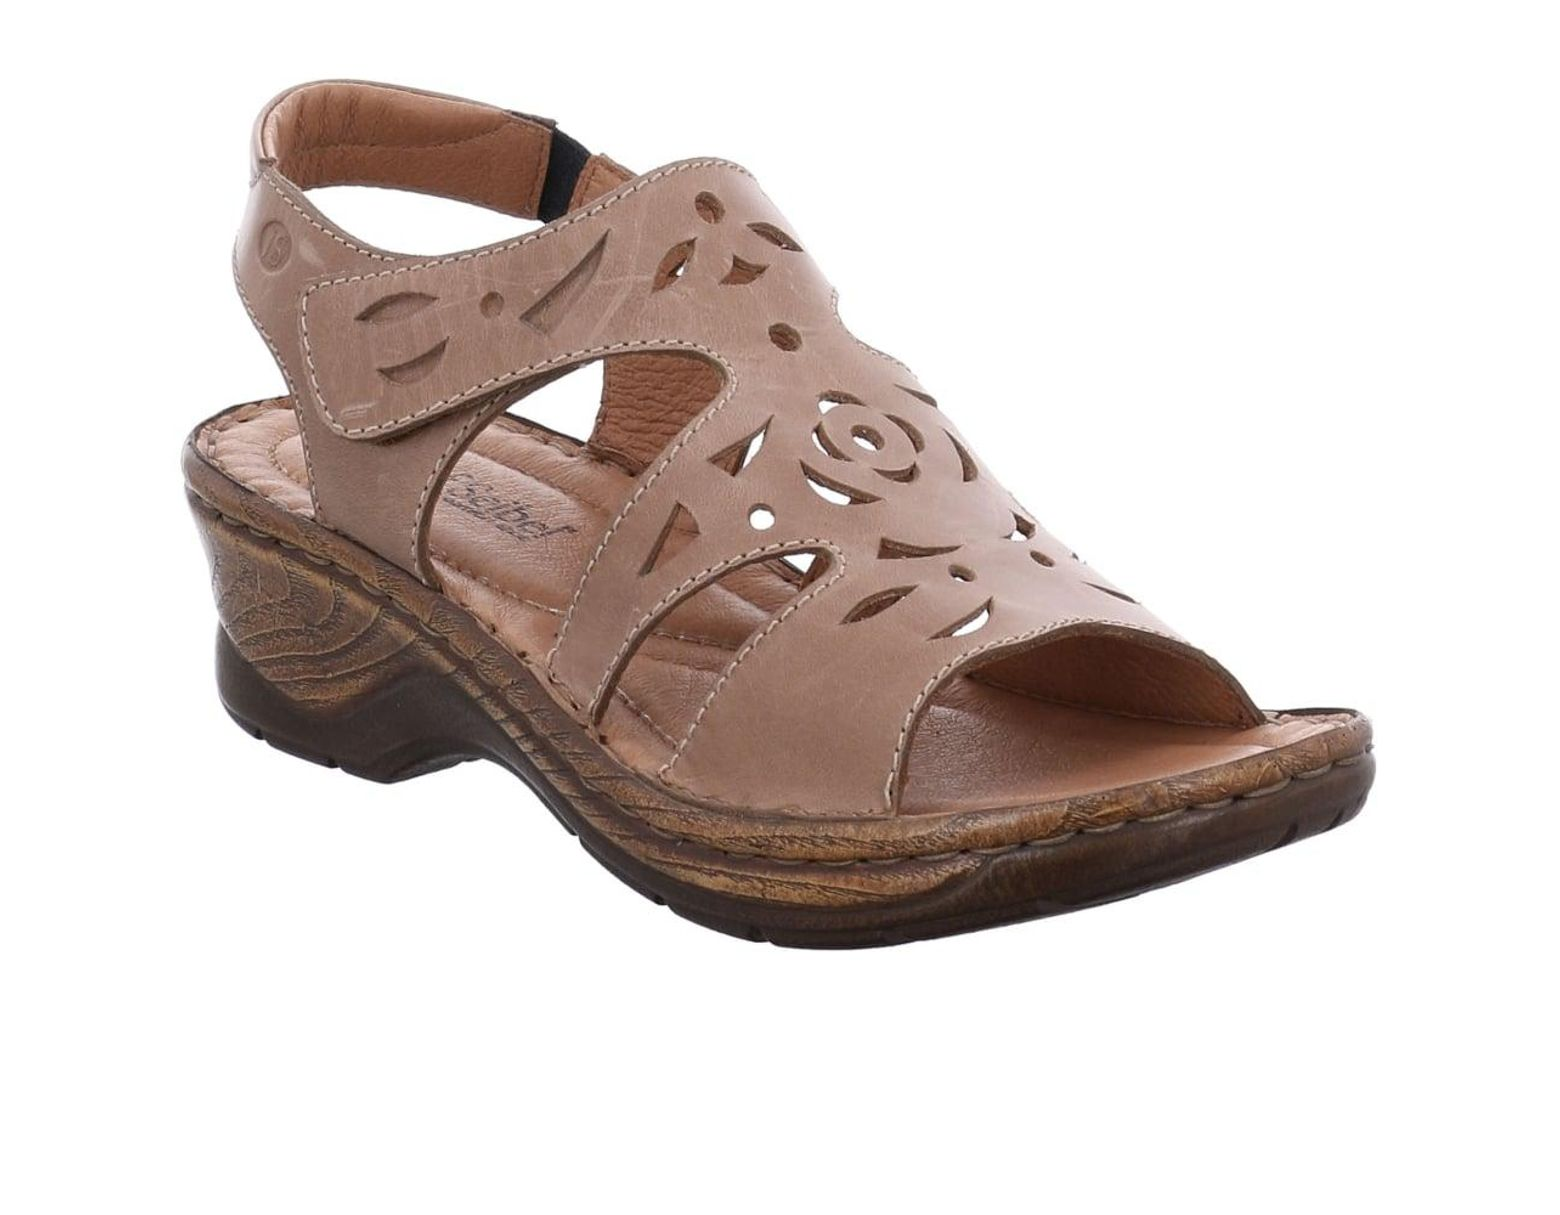 0a03a1787115 Lyst - Josef Seibel Catalonia 56 Womens Sandals in Brown